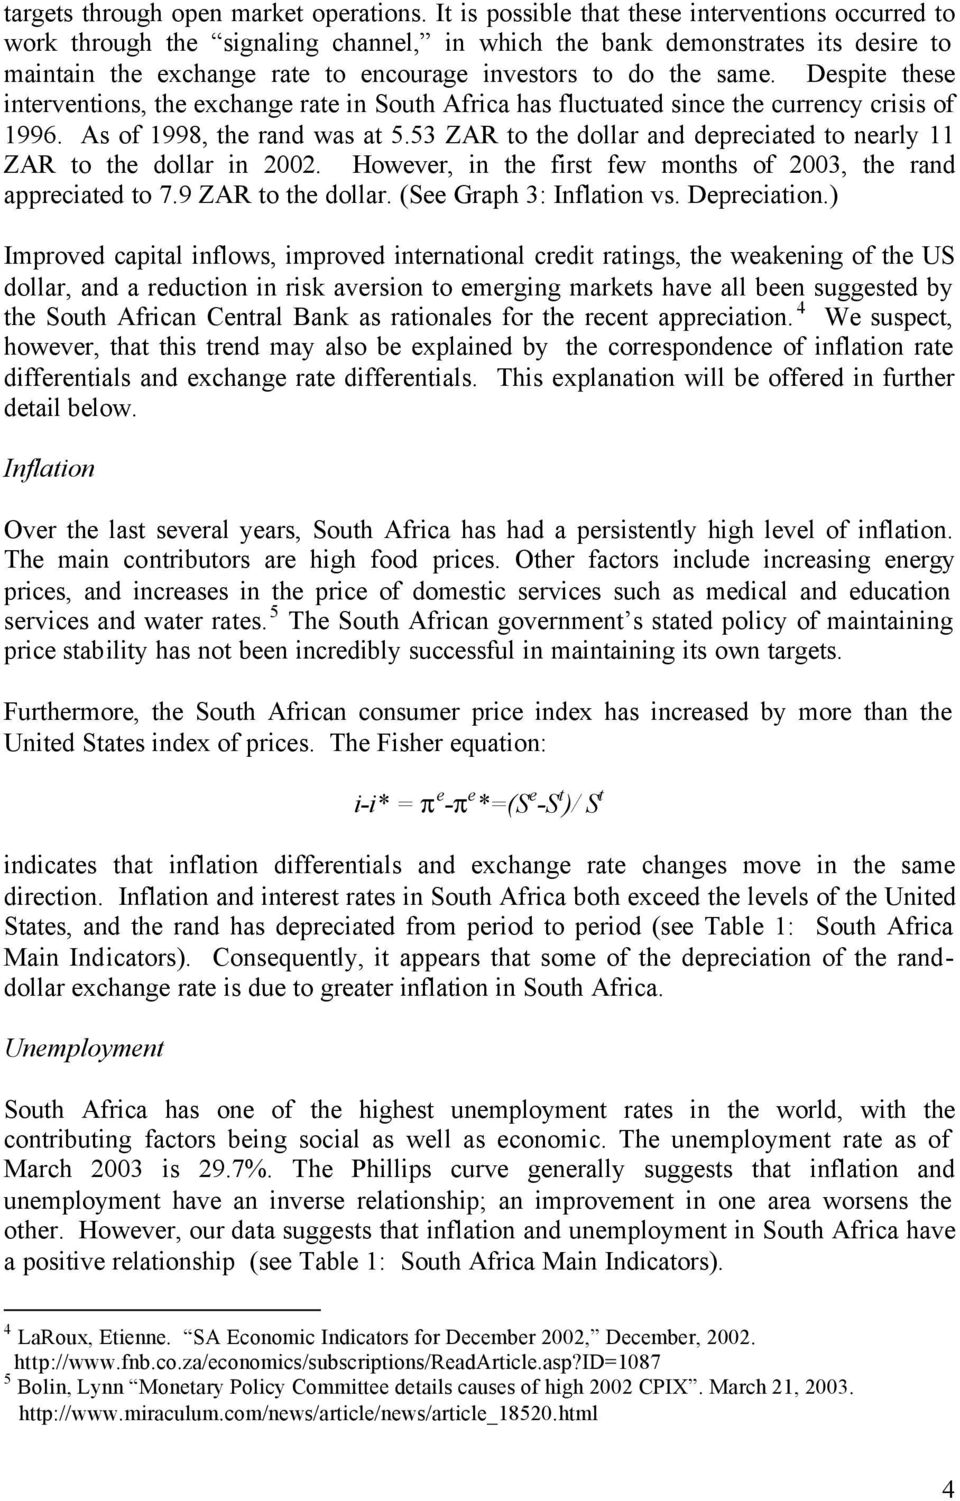 Despite these interventions, the exchange rate in South Africa has fluctuated since the currency crisis of 1996. As of 1998, the rand was at 5.